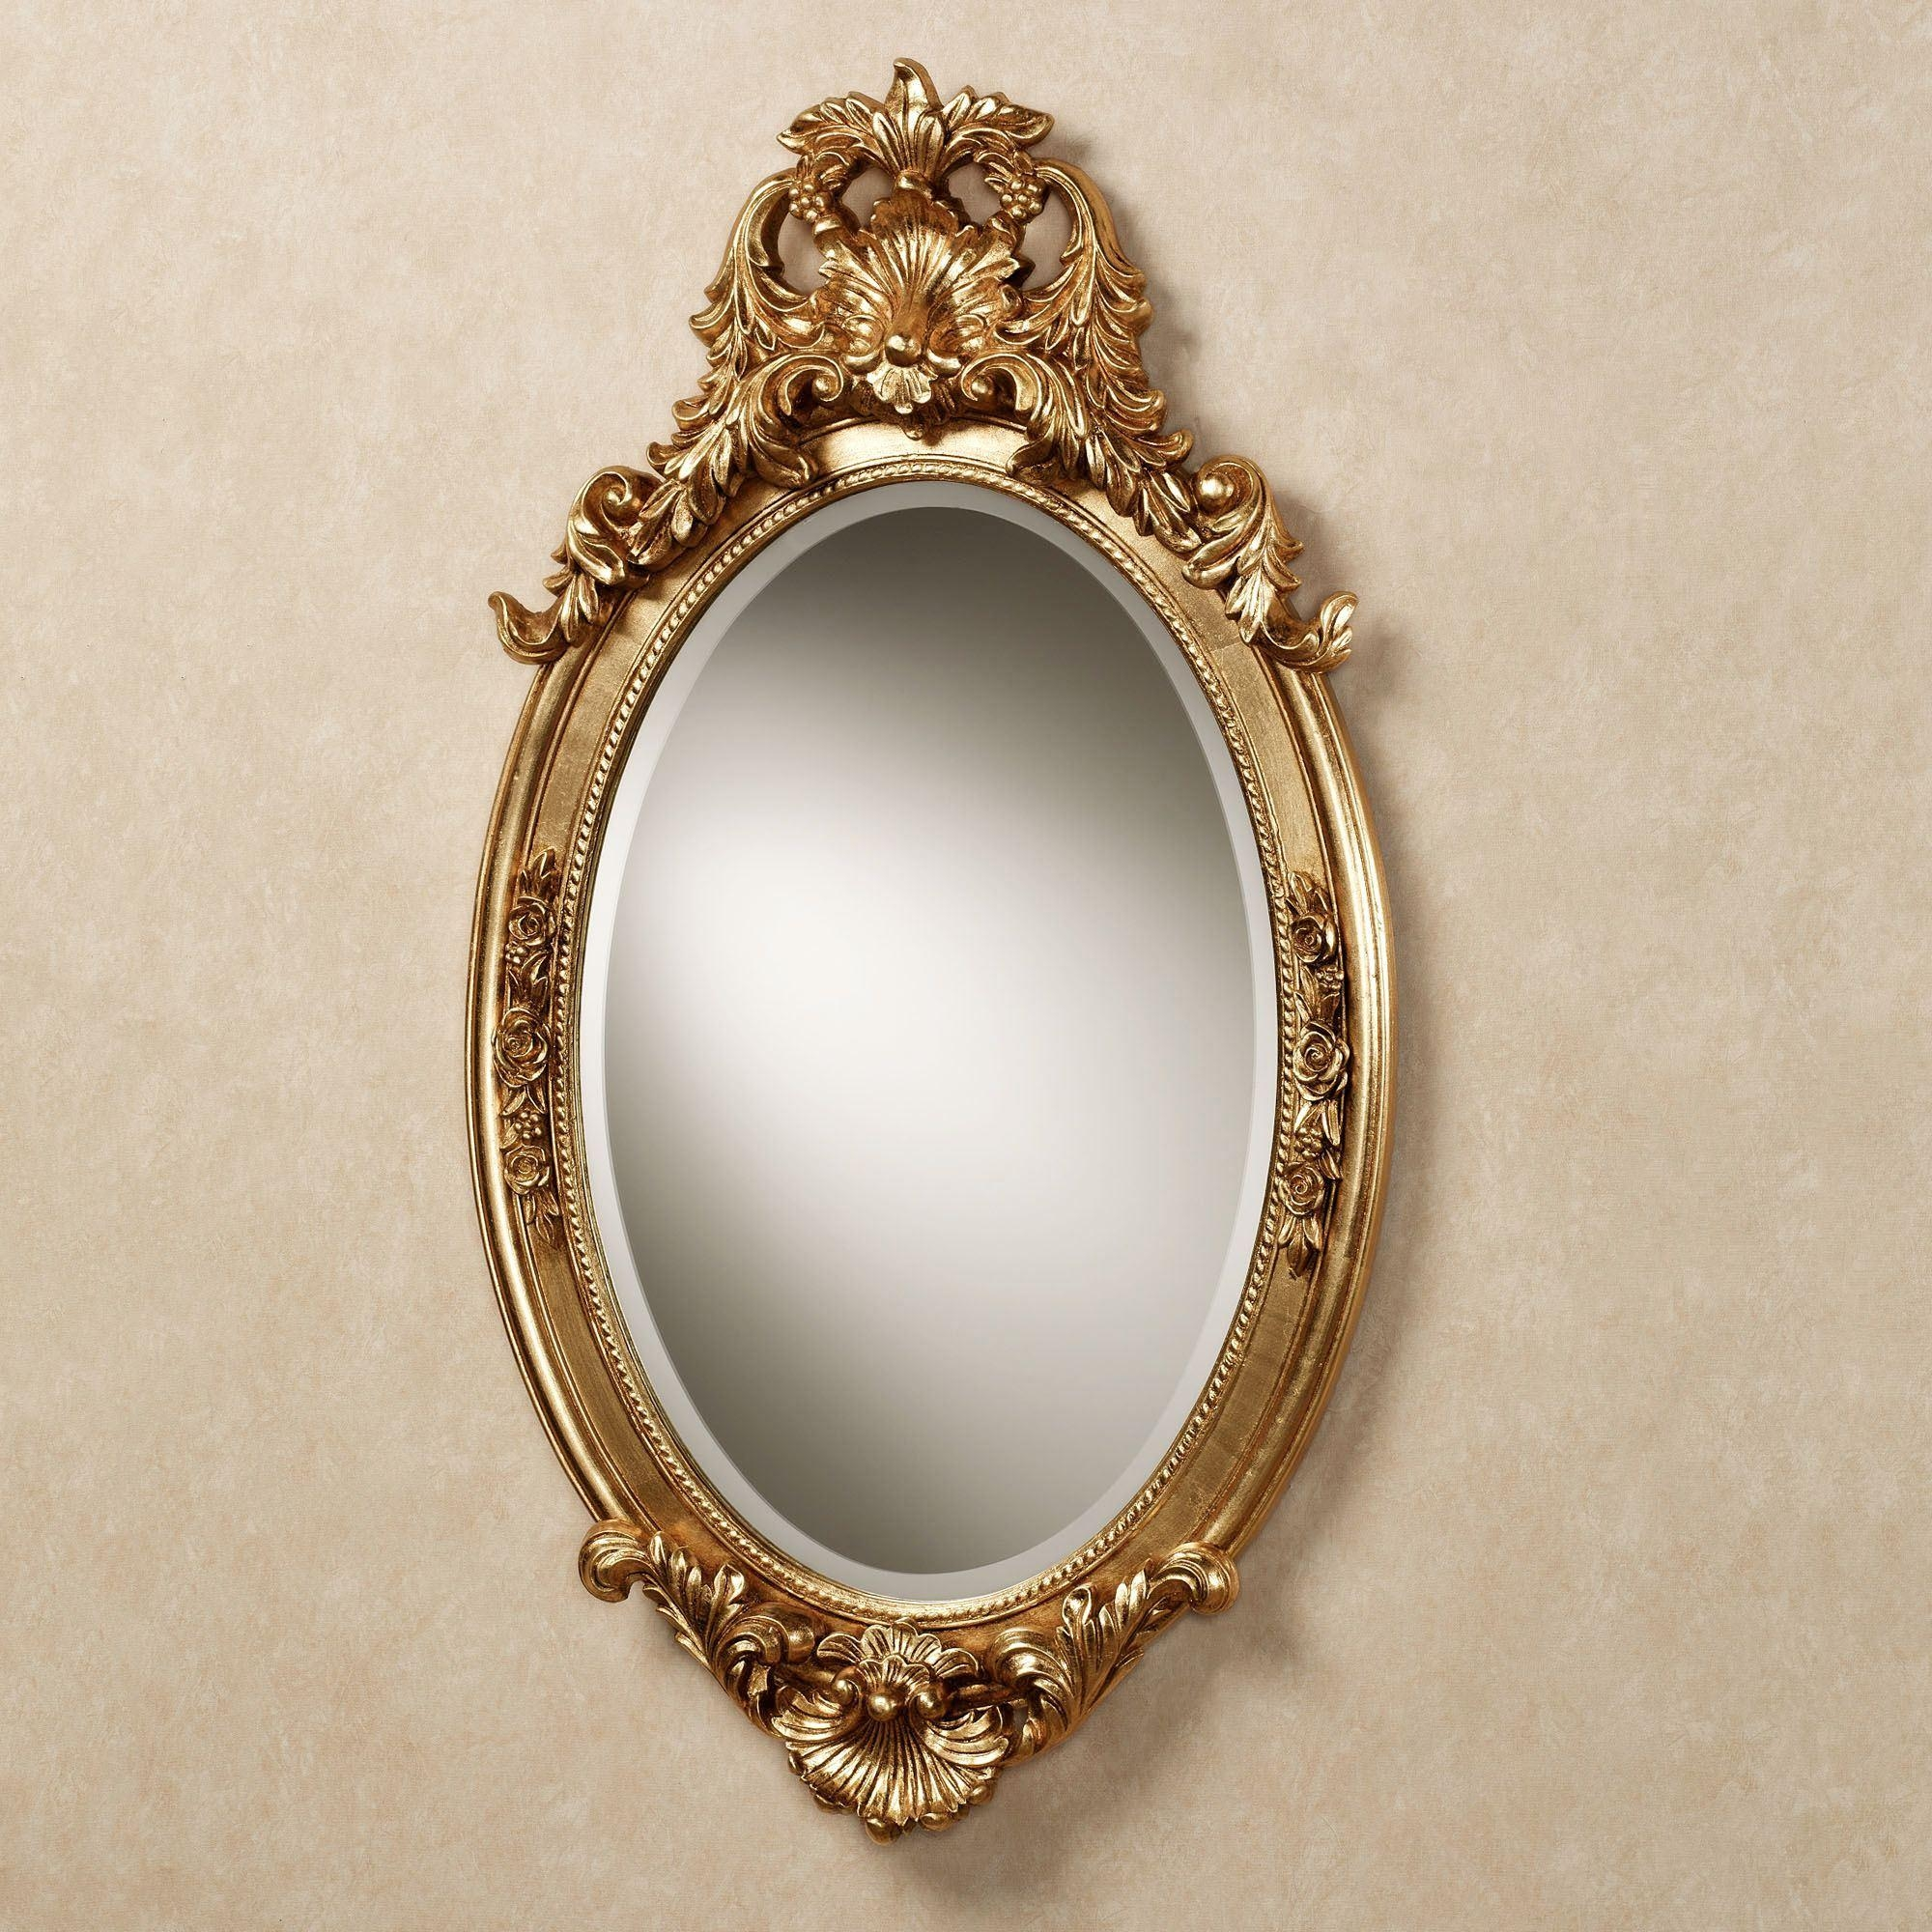 Hallandale Acanthus Leaf Oval Wall Mirror Within Vintage Gold Mirrors (Image 12 of 20)